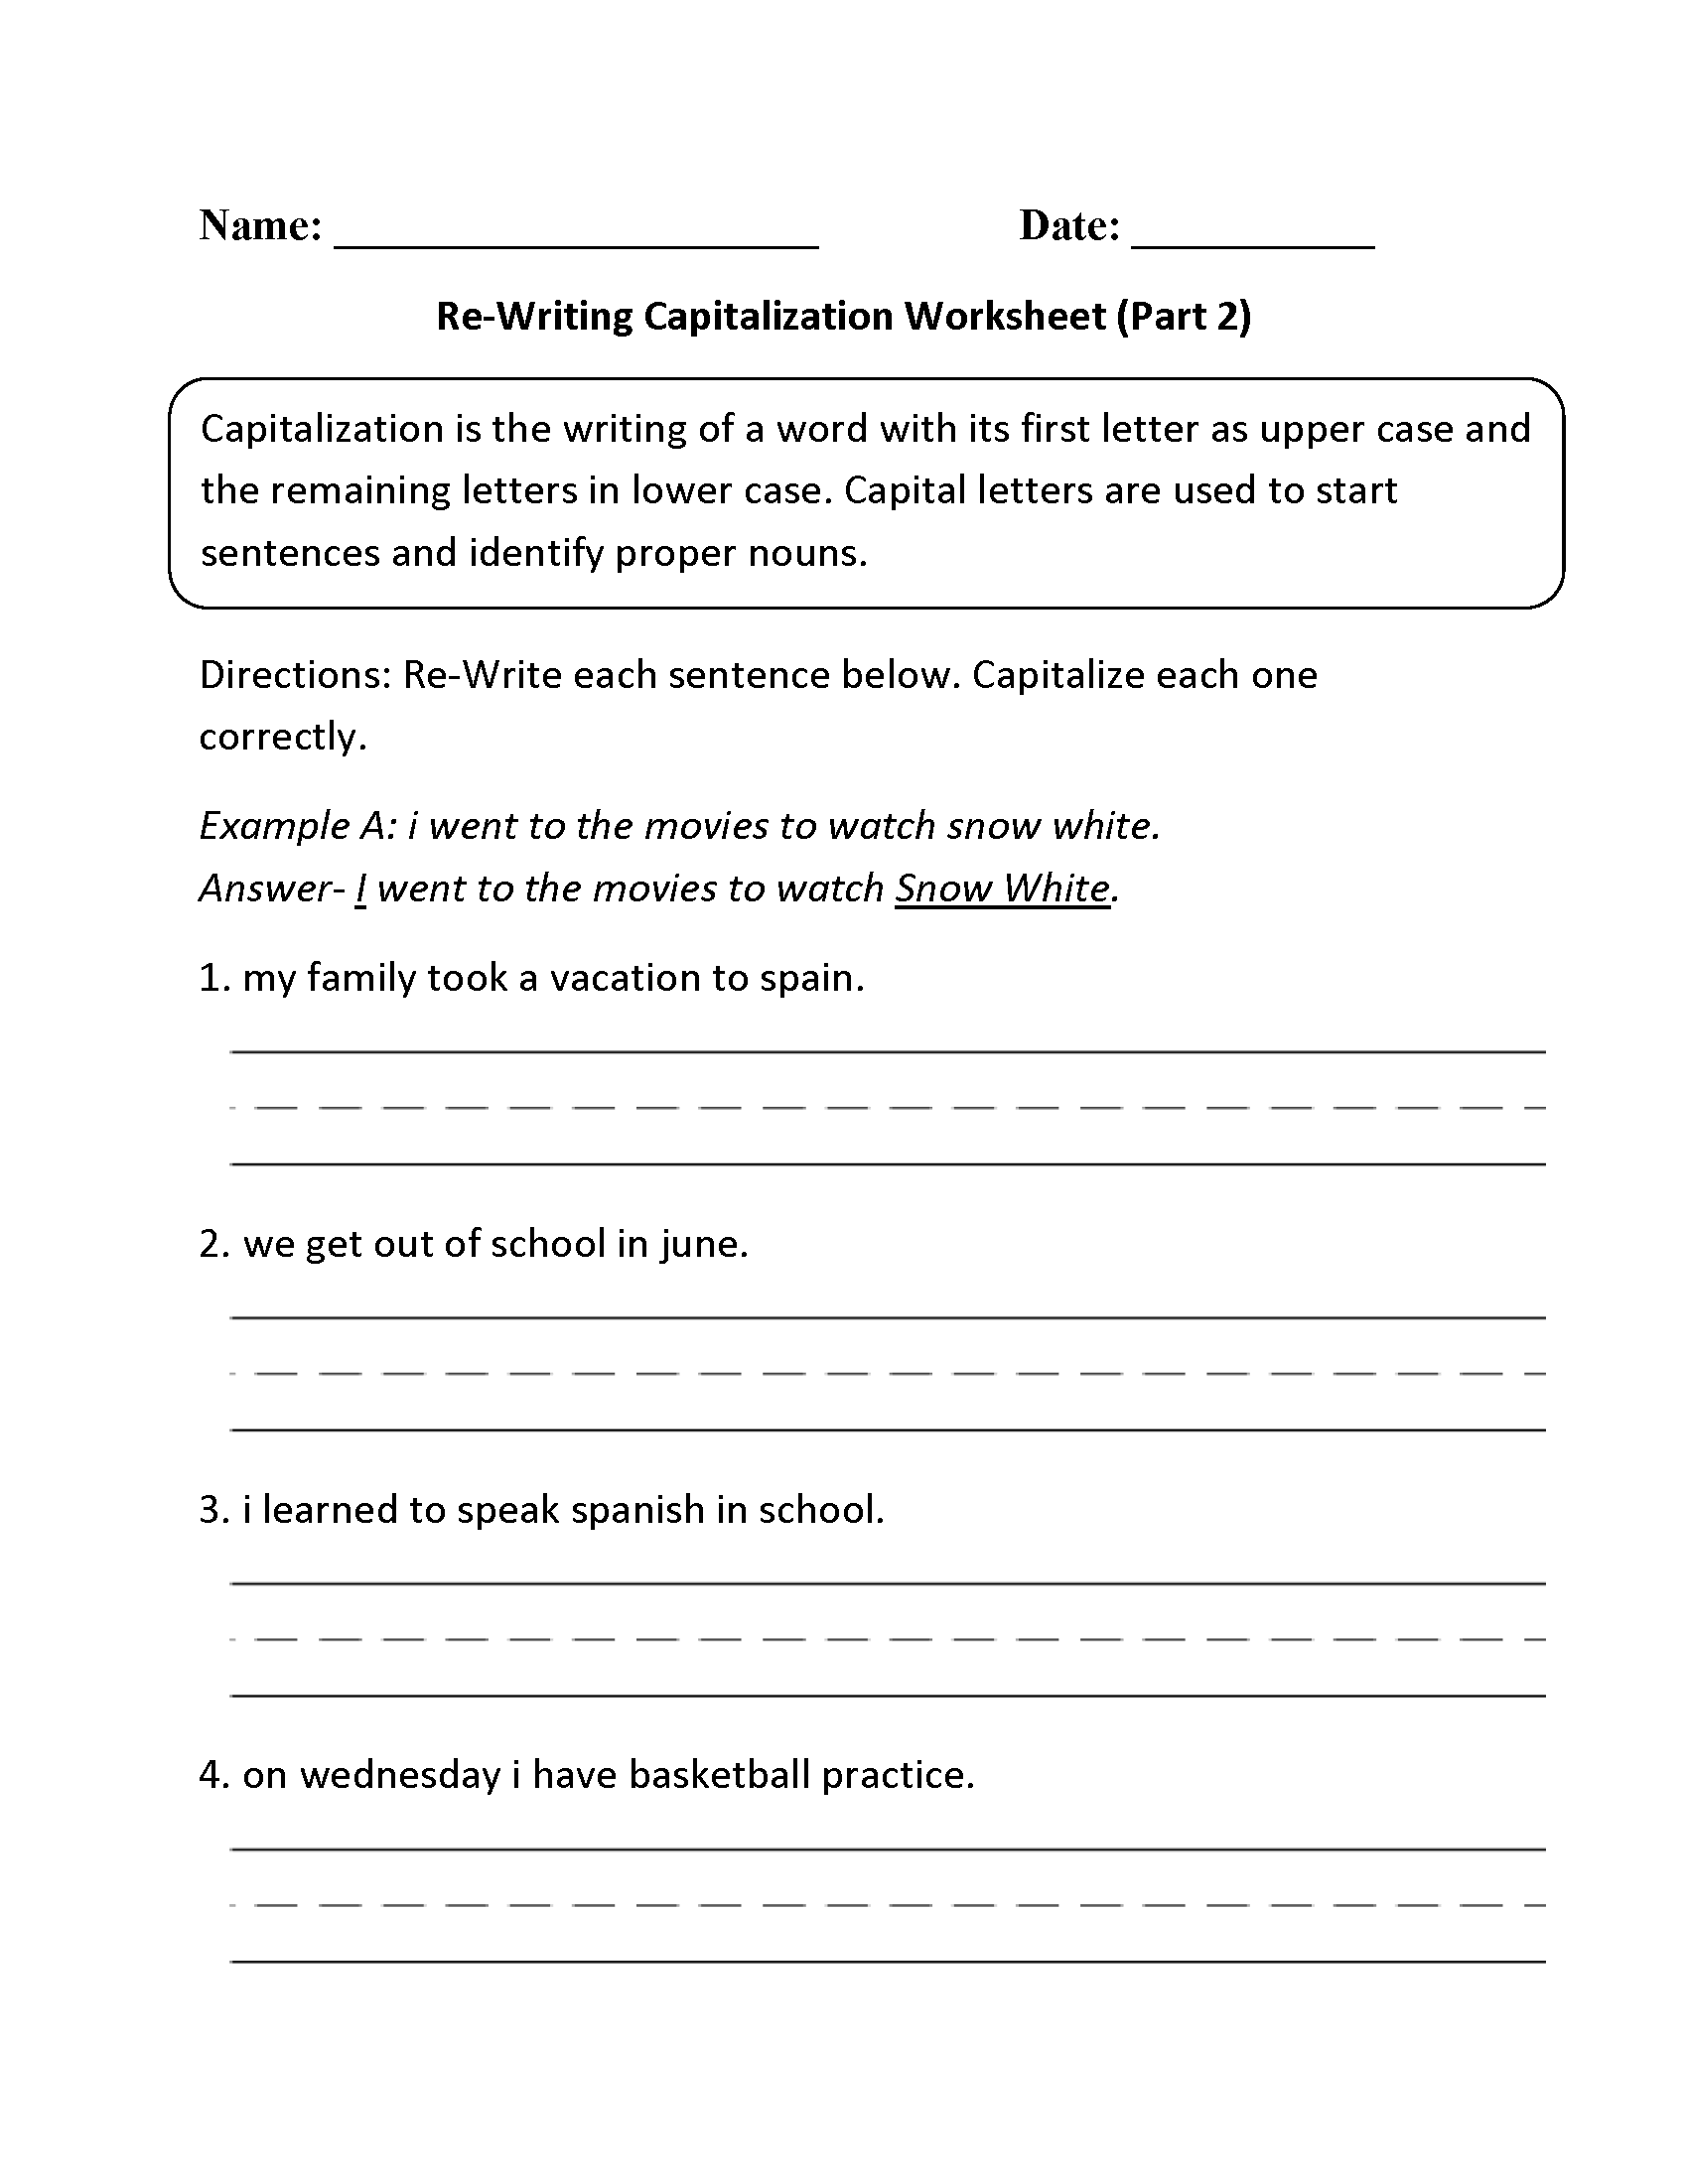 worksheet Writing Name Worksheet englishlinx com capitalization worksheets re writing worksheet part 2